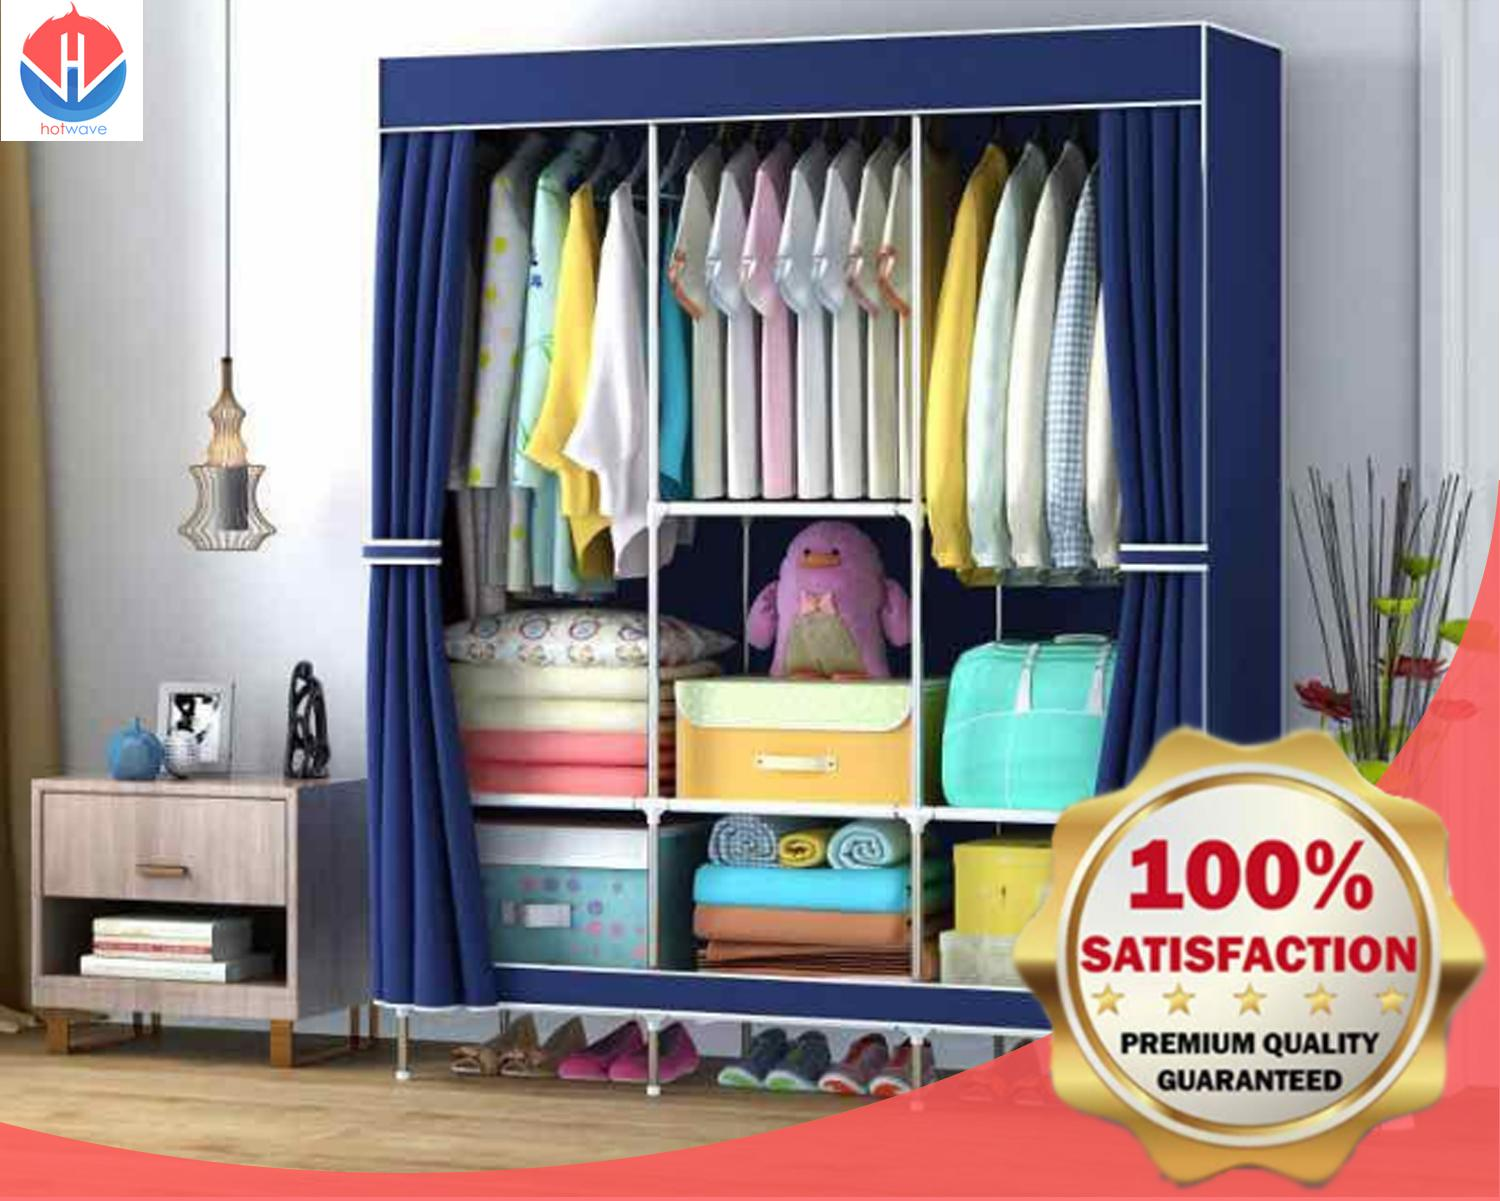 Clothes Storage King Size Home Wardrobe Clothes Storage And Organization Big Size 88130 Purple